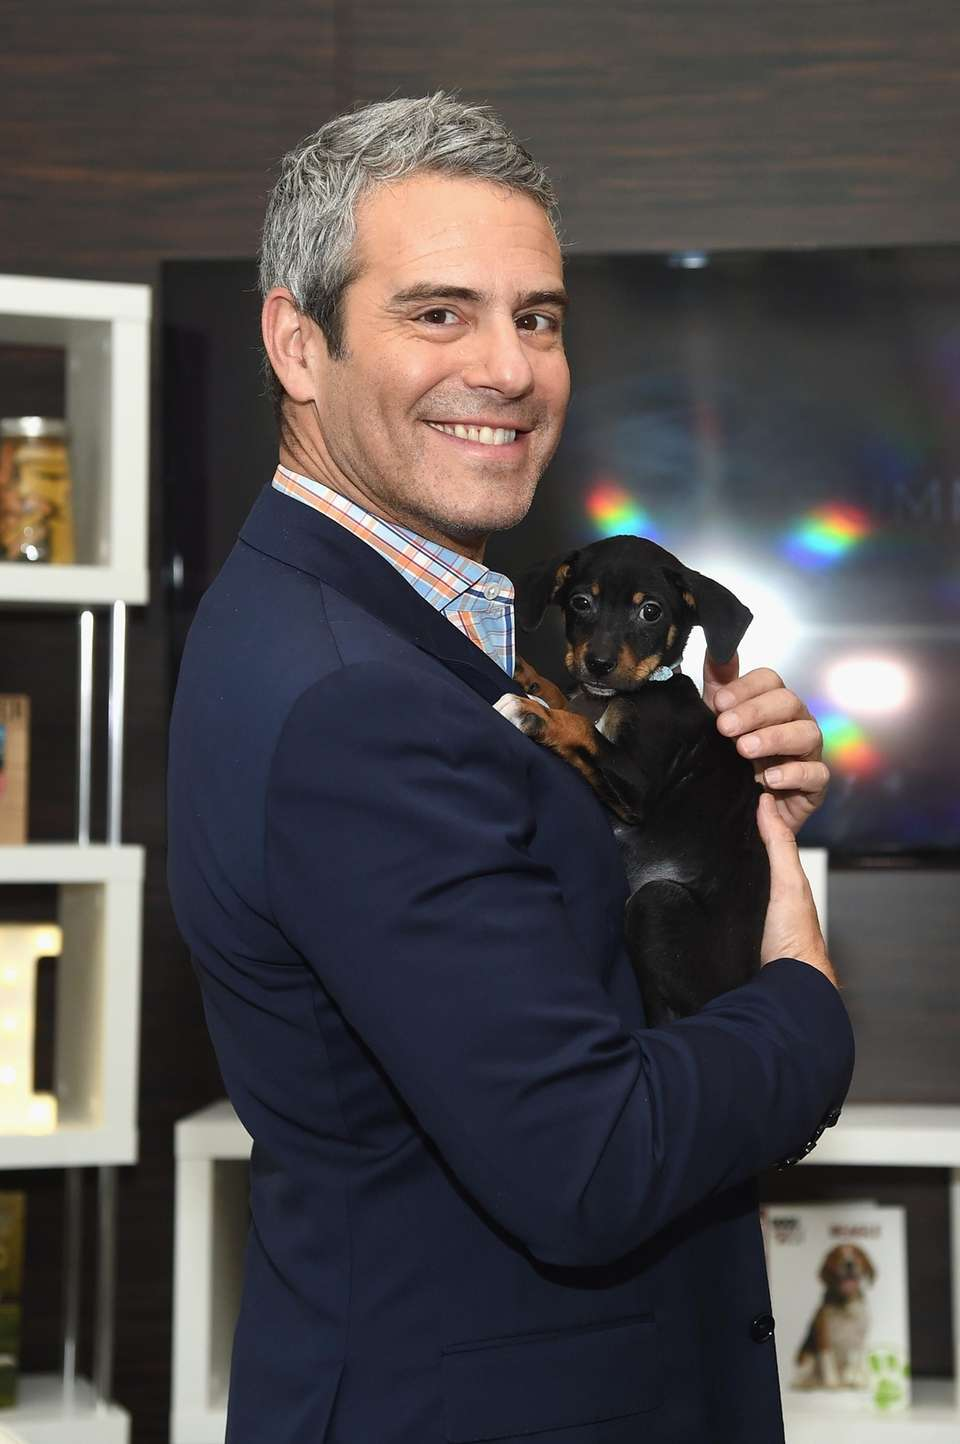 Talk show host Andy Cohen with a puppy